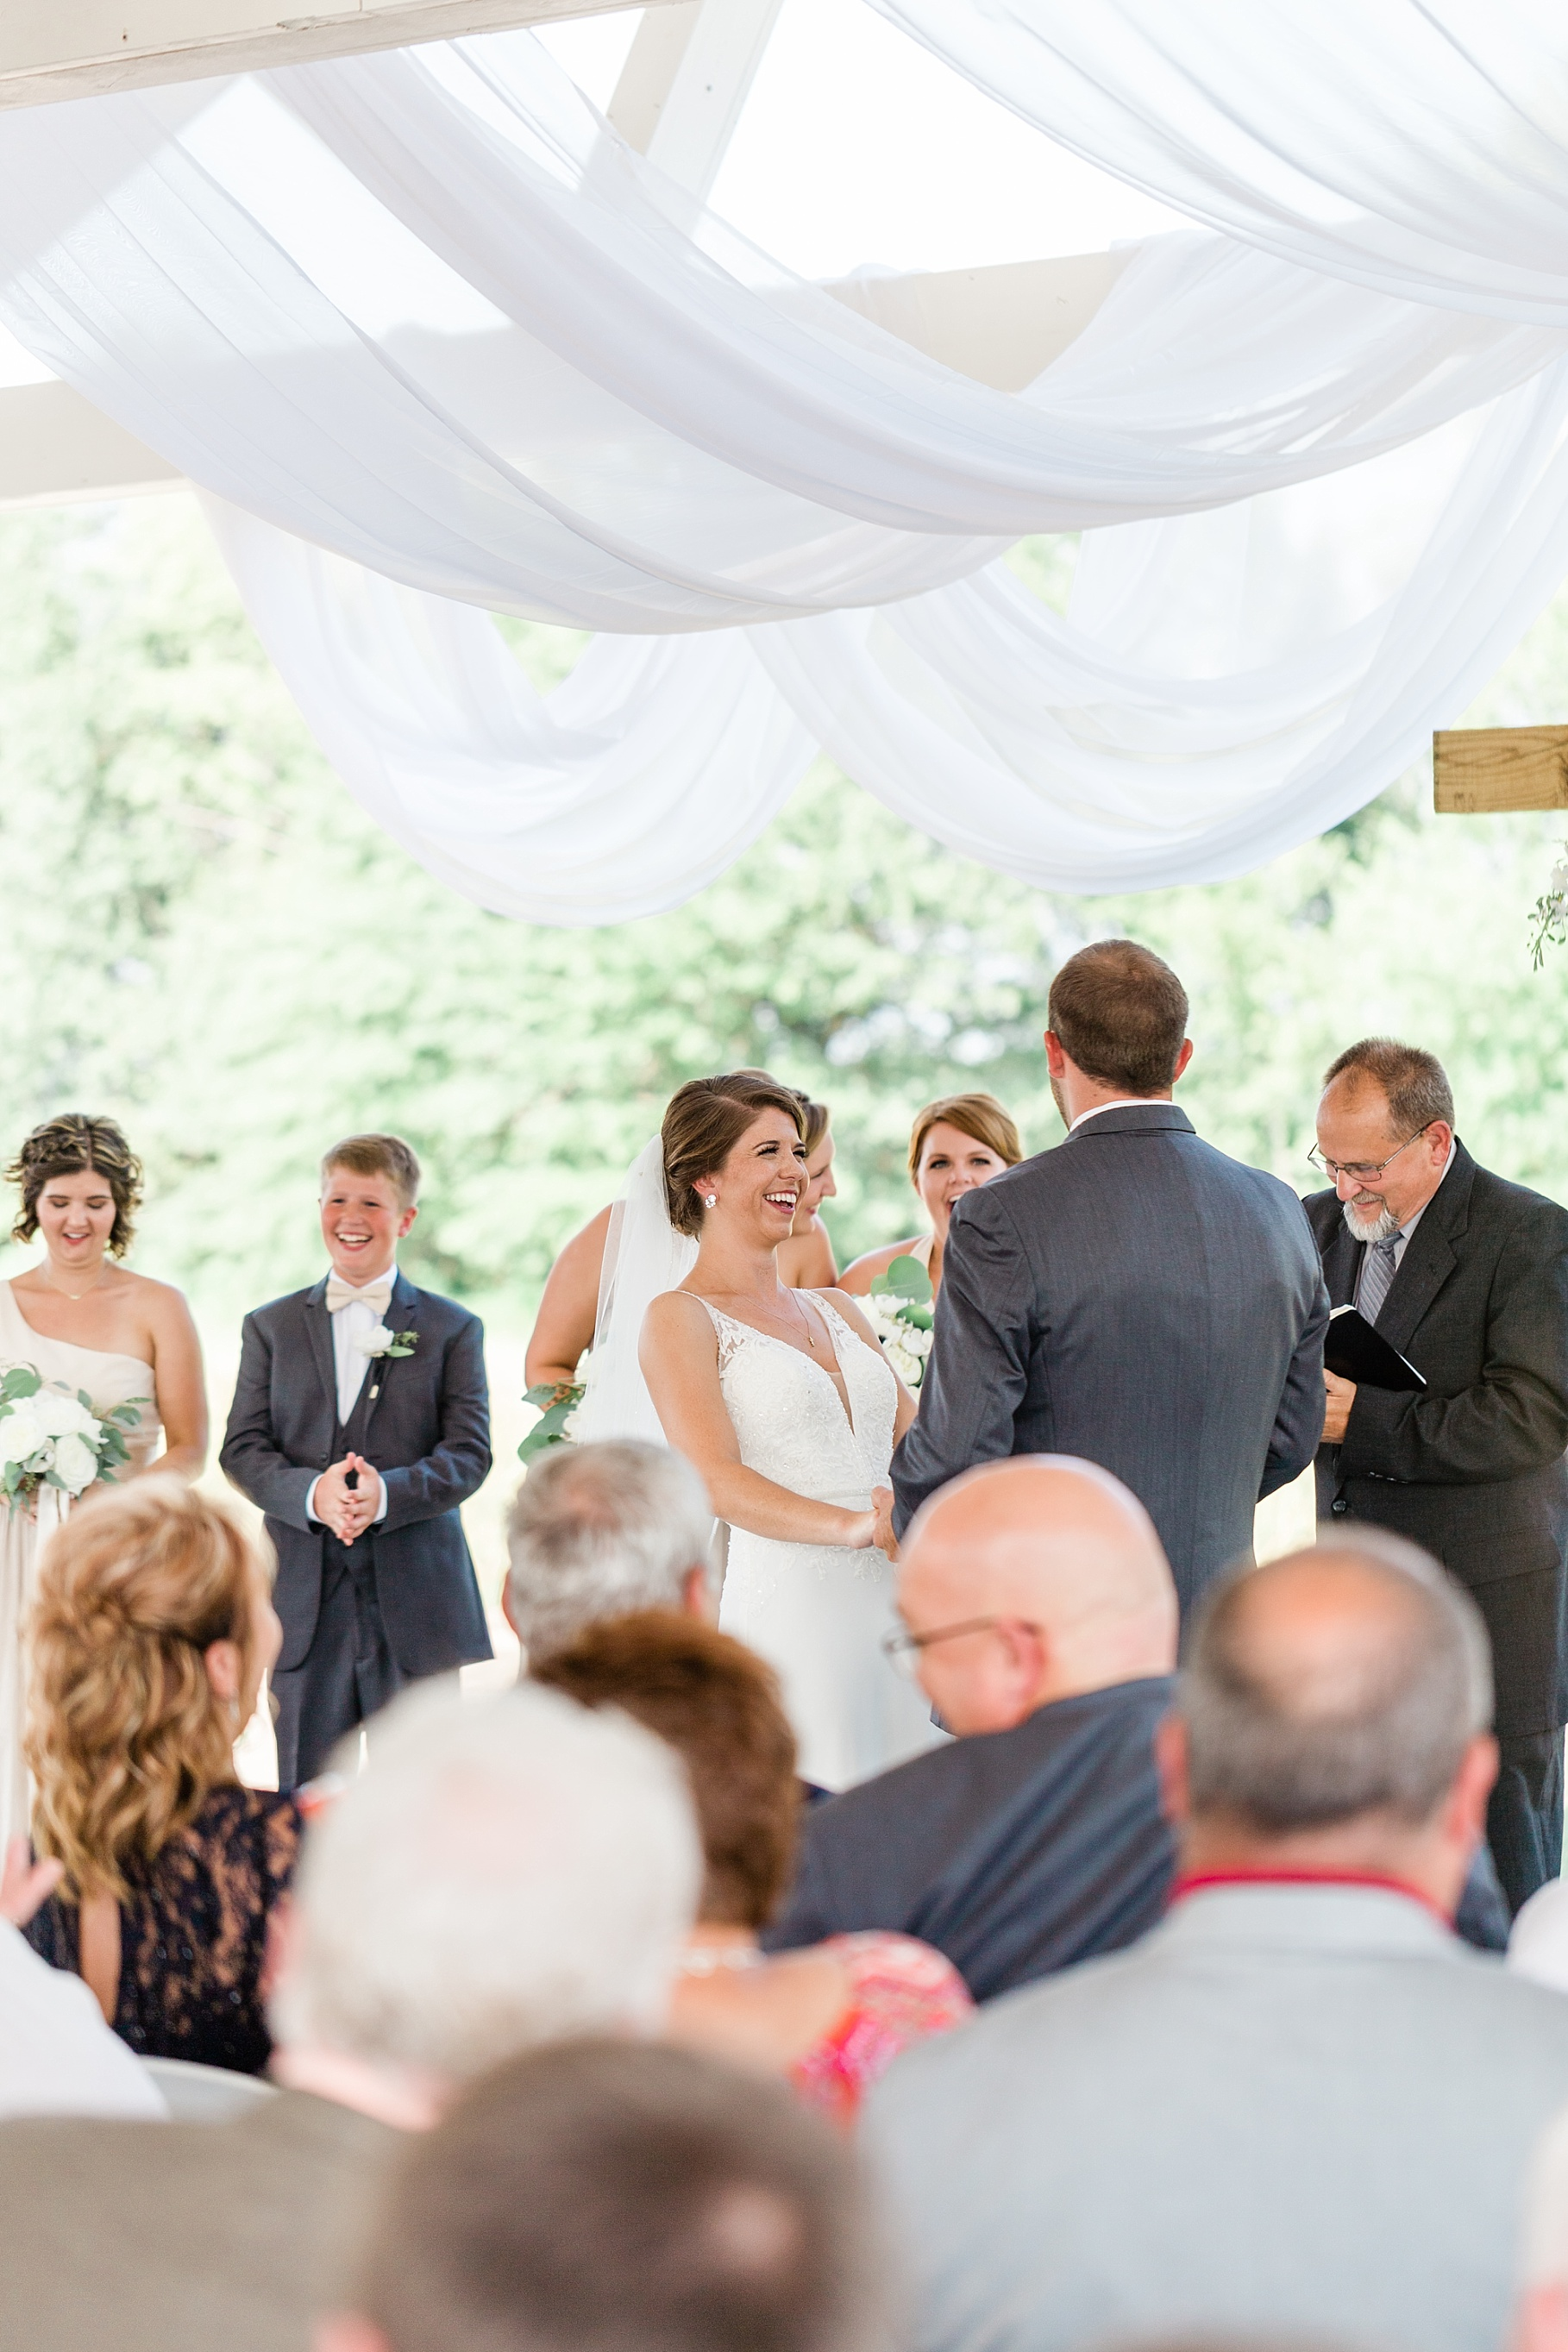 Wedding Ceremony with Confetti Pop at Emerson Fields Venue by Associate Wedding Photographer for Kelsi Kliethermes Photography Best Columbia Missouri and Maui Hawaii Wedding Photographer_0017.jpg